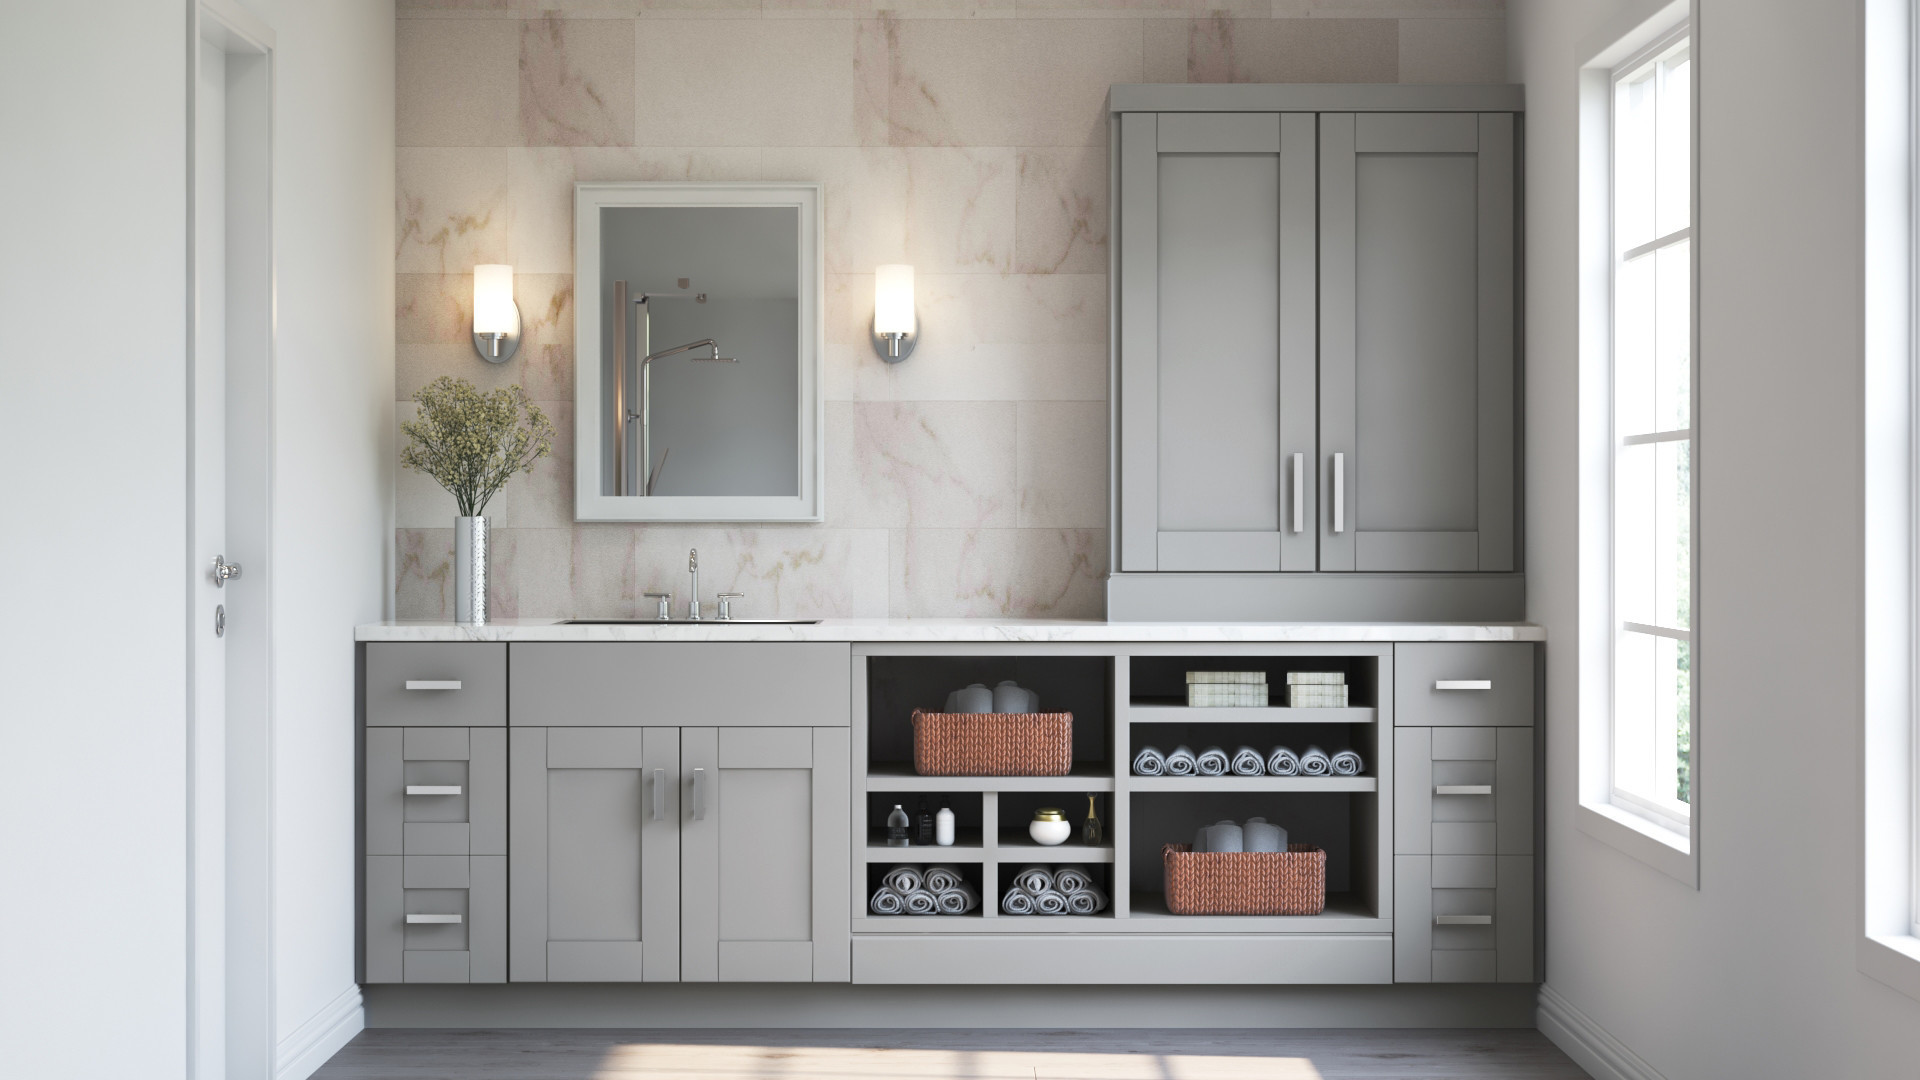 Hampton Bay Shaker Pantry Cabinets In Dove Gray